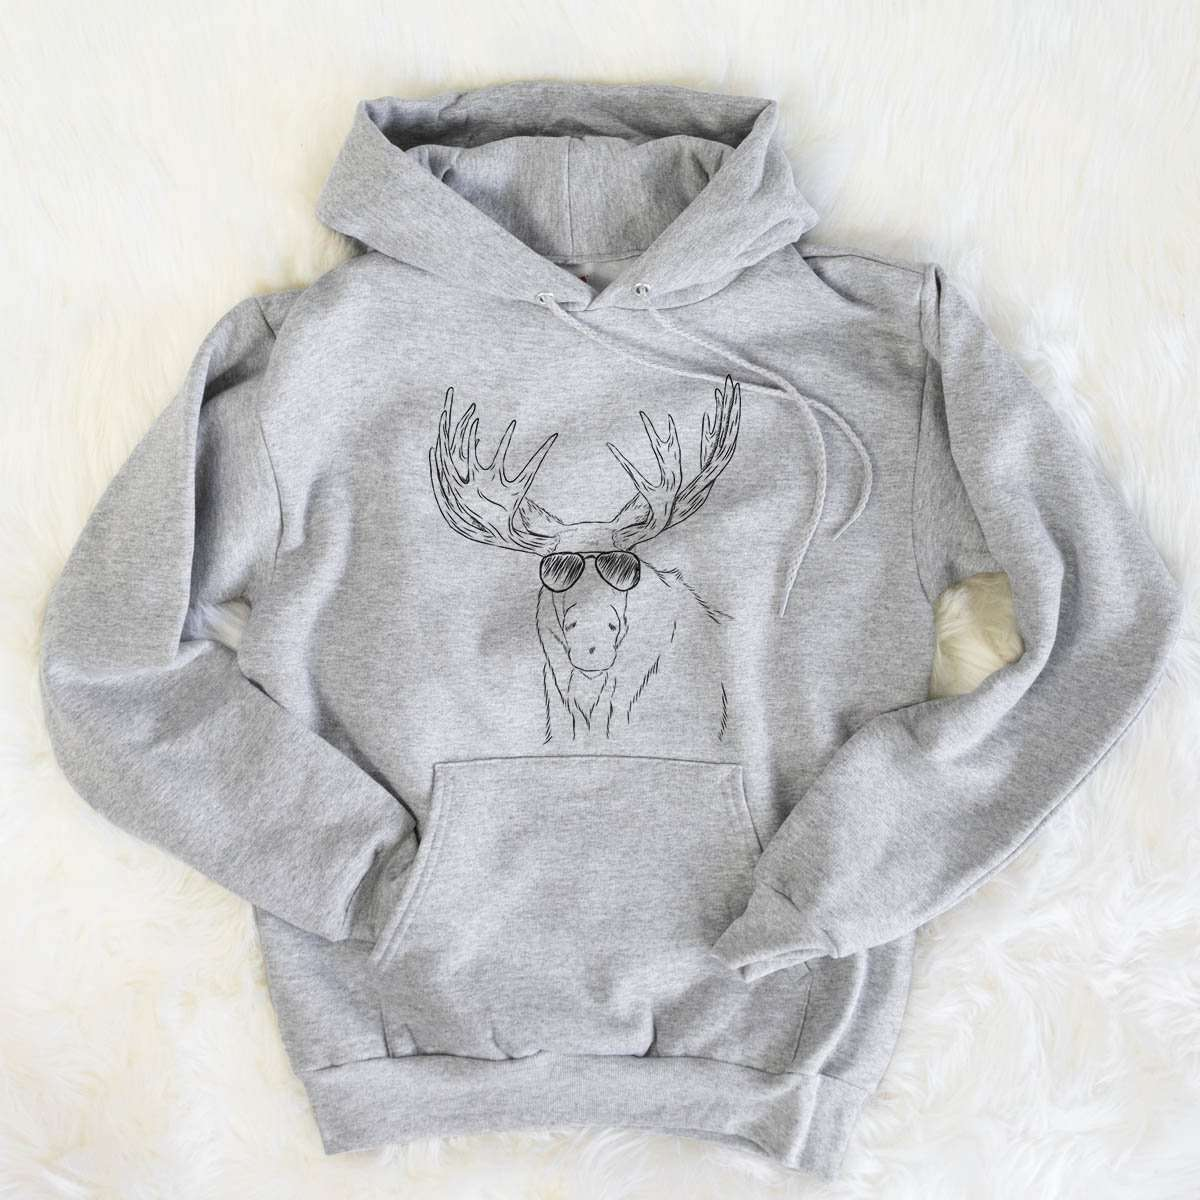 Monty the Moose - Mens Hooded Sweatshirt